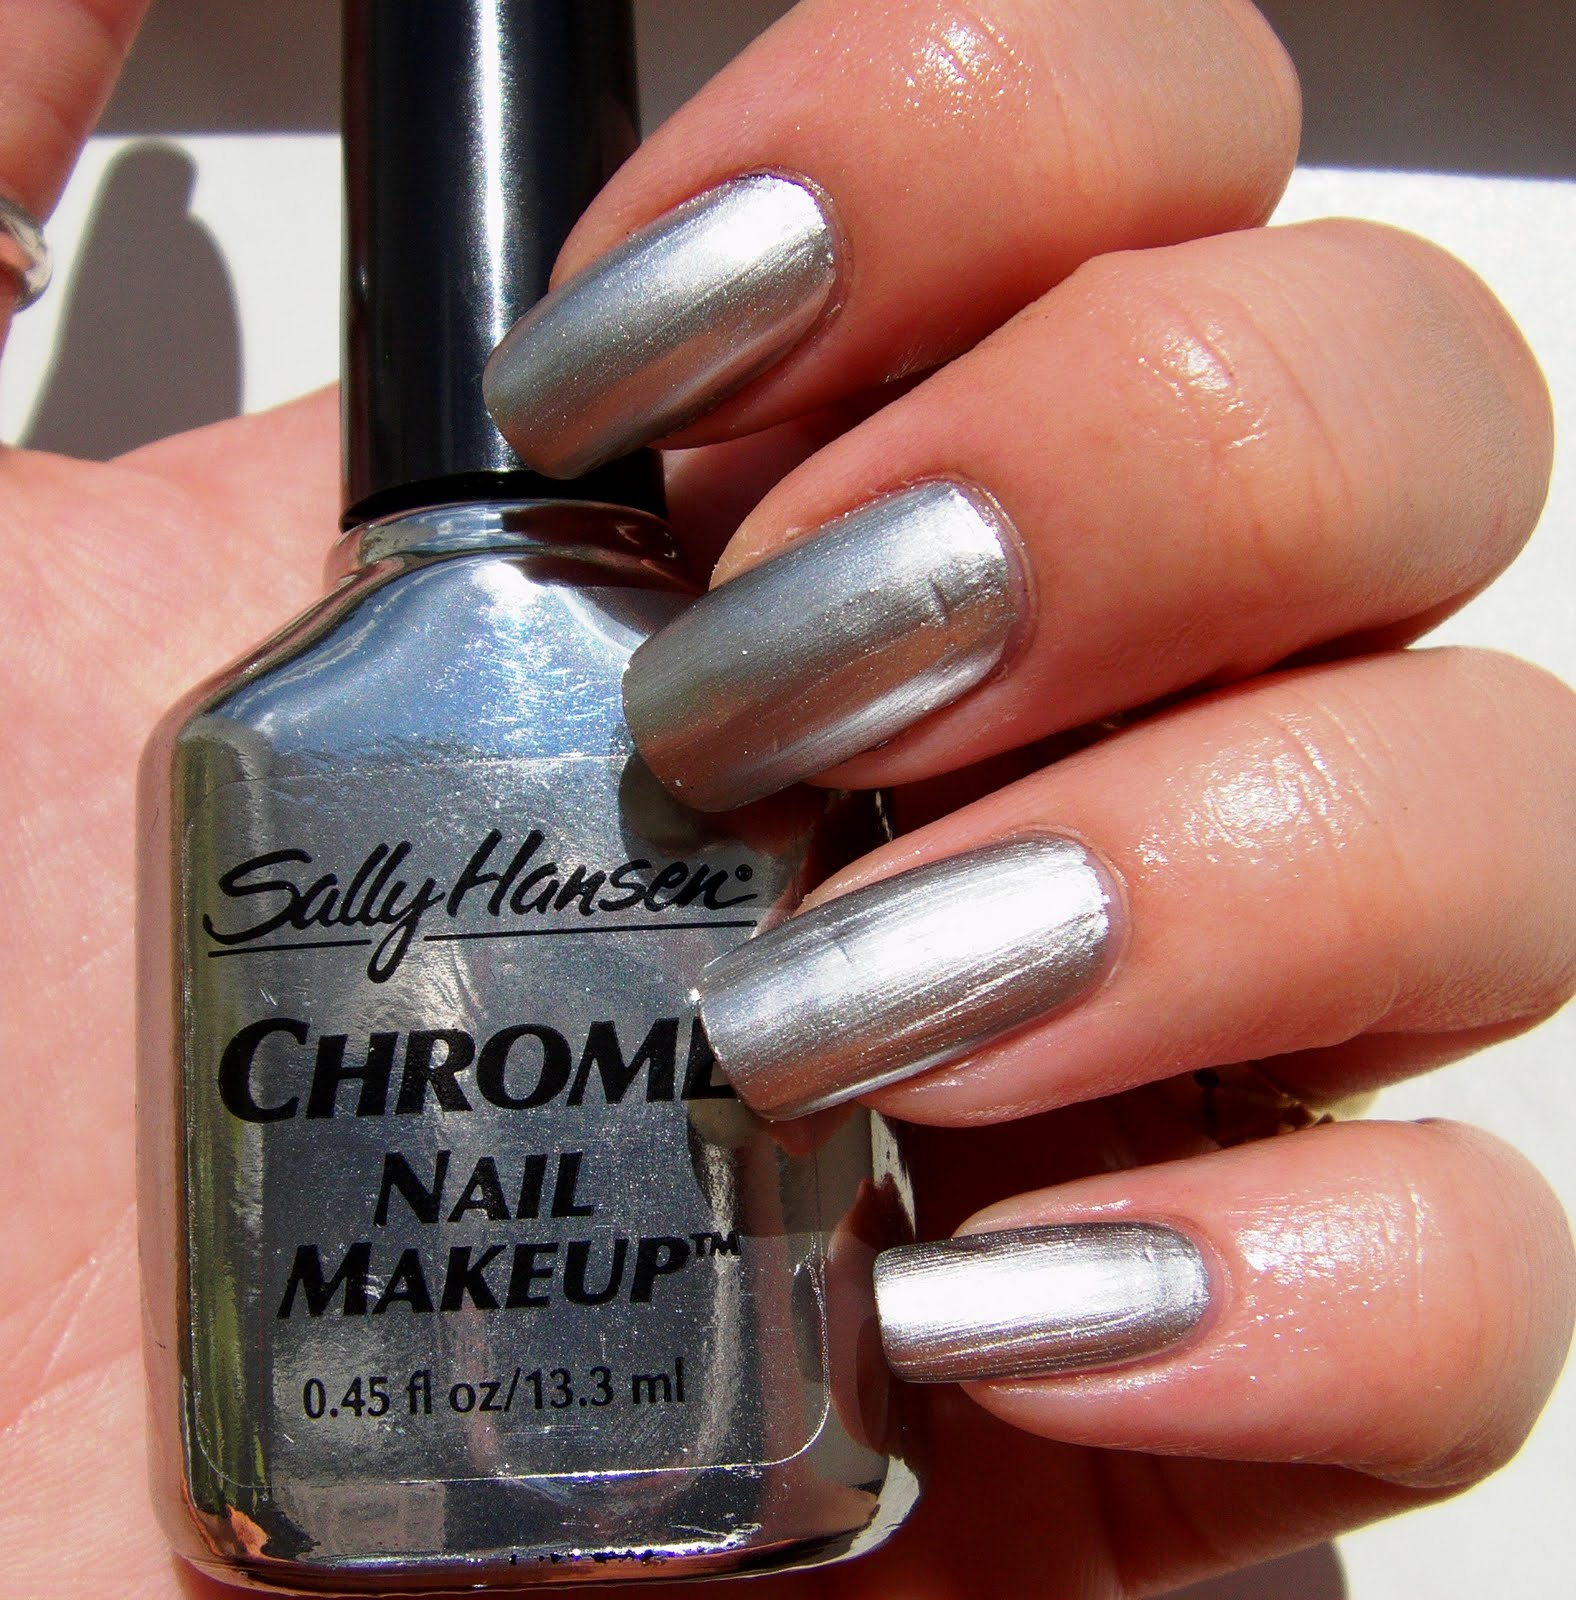 Nail Polish That Looks Like Chrome: All About Nails: Sally Hansen Chrome Nail Makeup + Dice